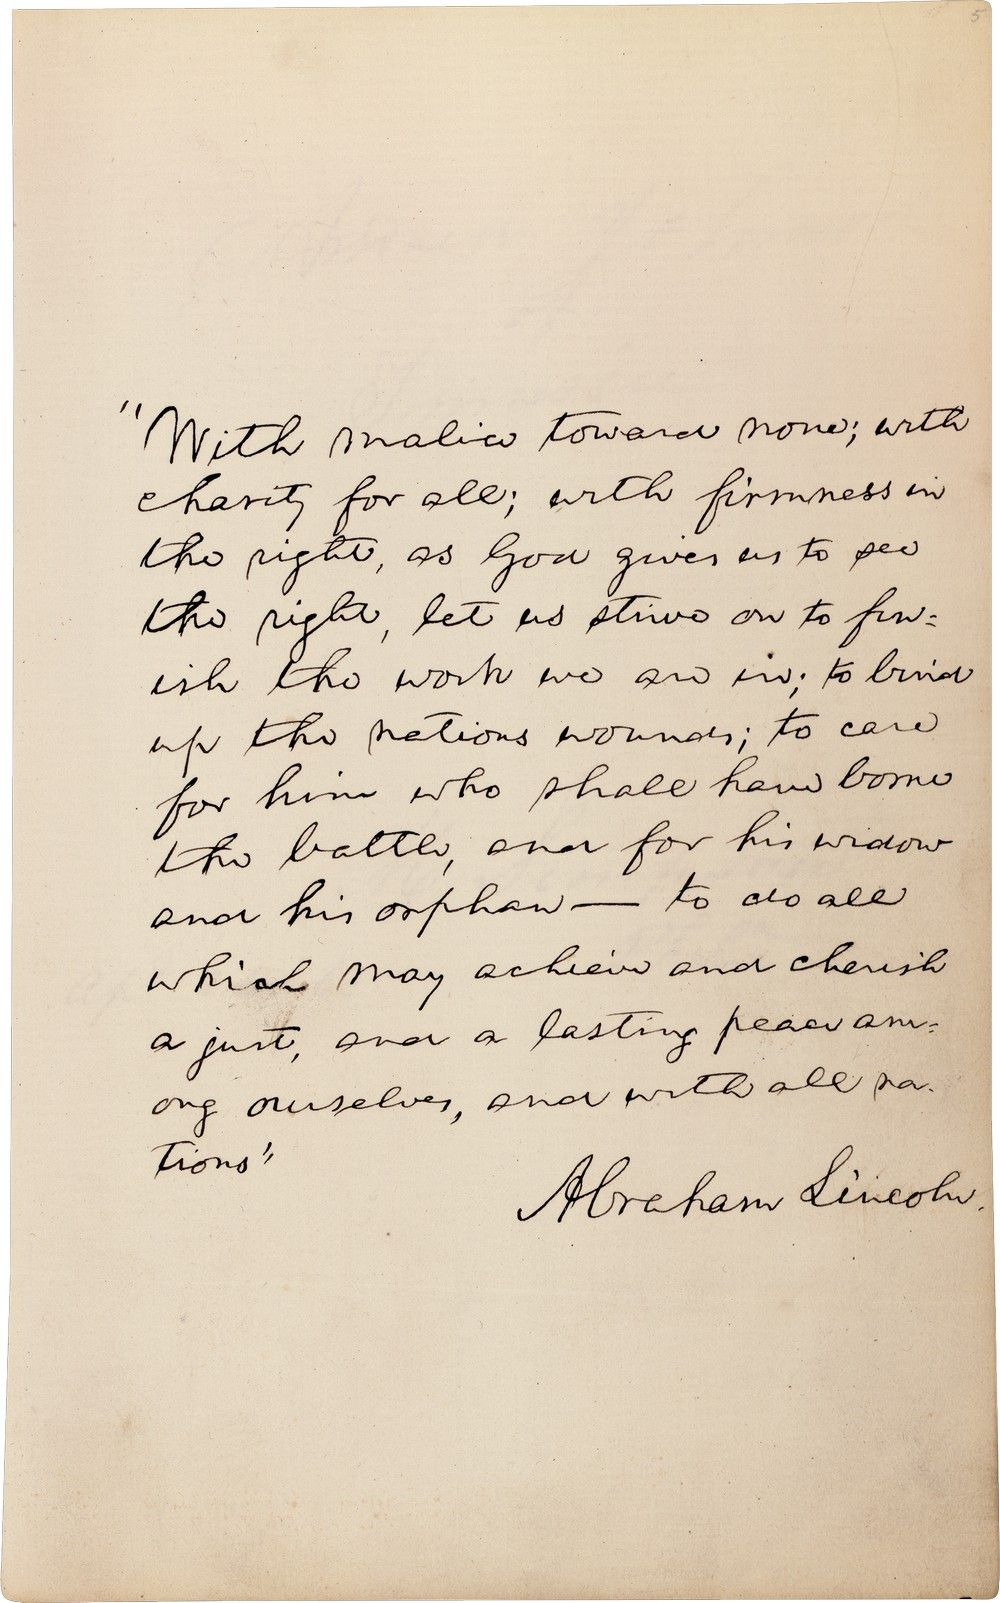 Lincoln's Second Inaugural Address Transcript & With Malice Toward None Quote in Autograph